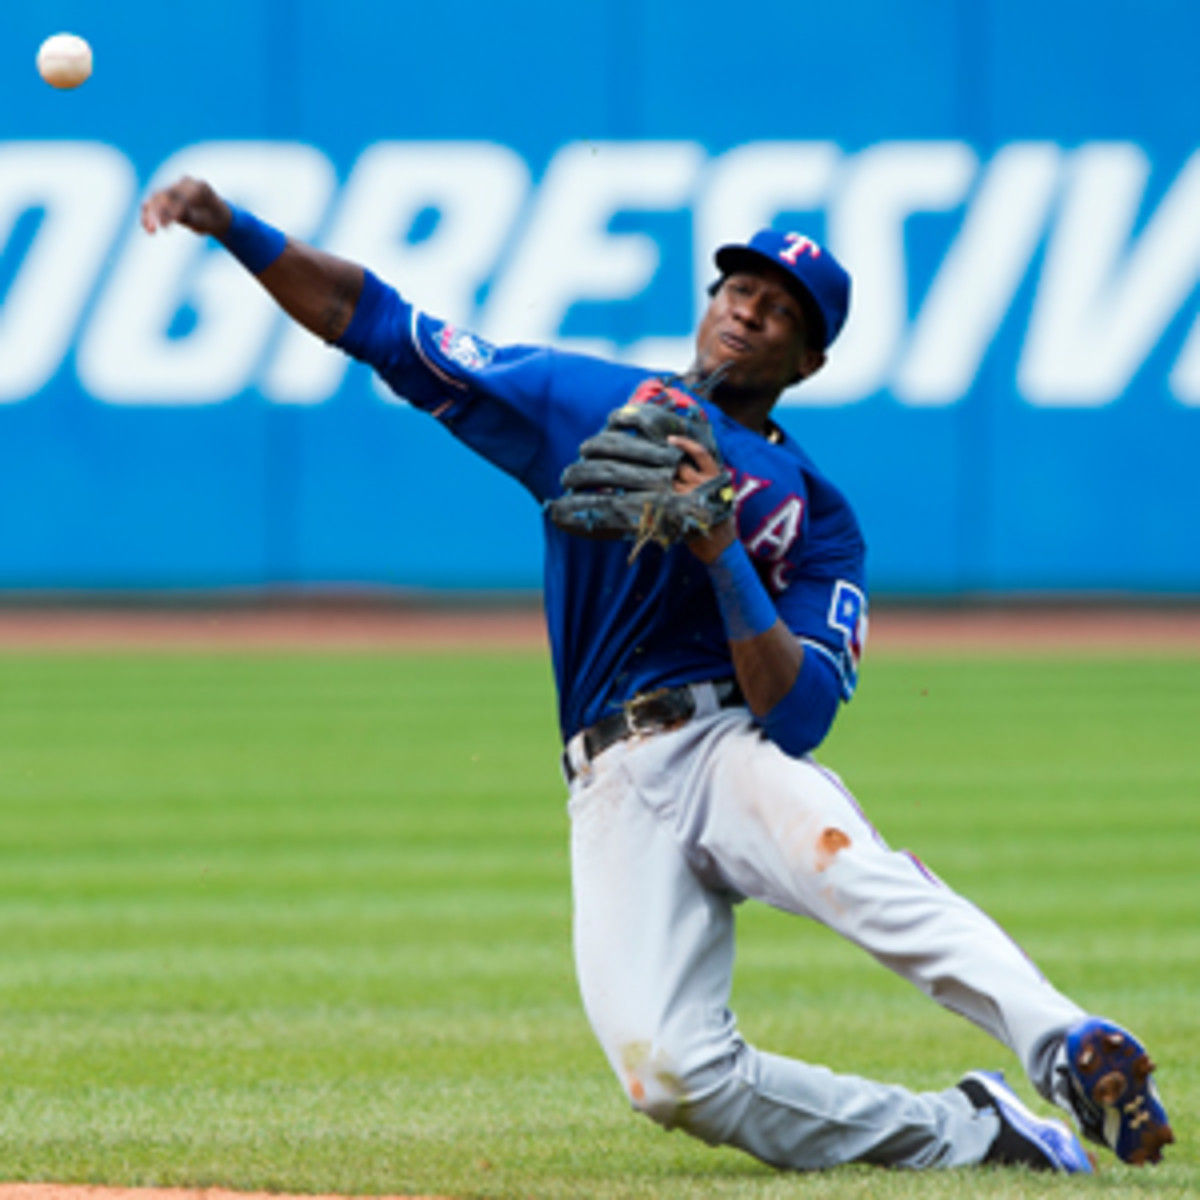 The Rangers want Jurickson Profar to play on a daily basis in teh minors. (Jason Miller/Getty Images)